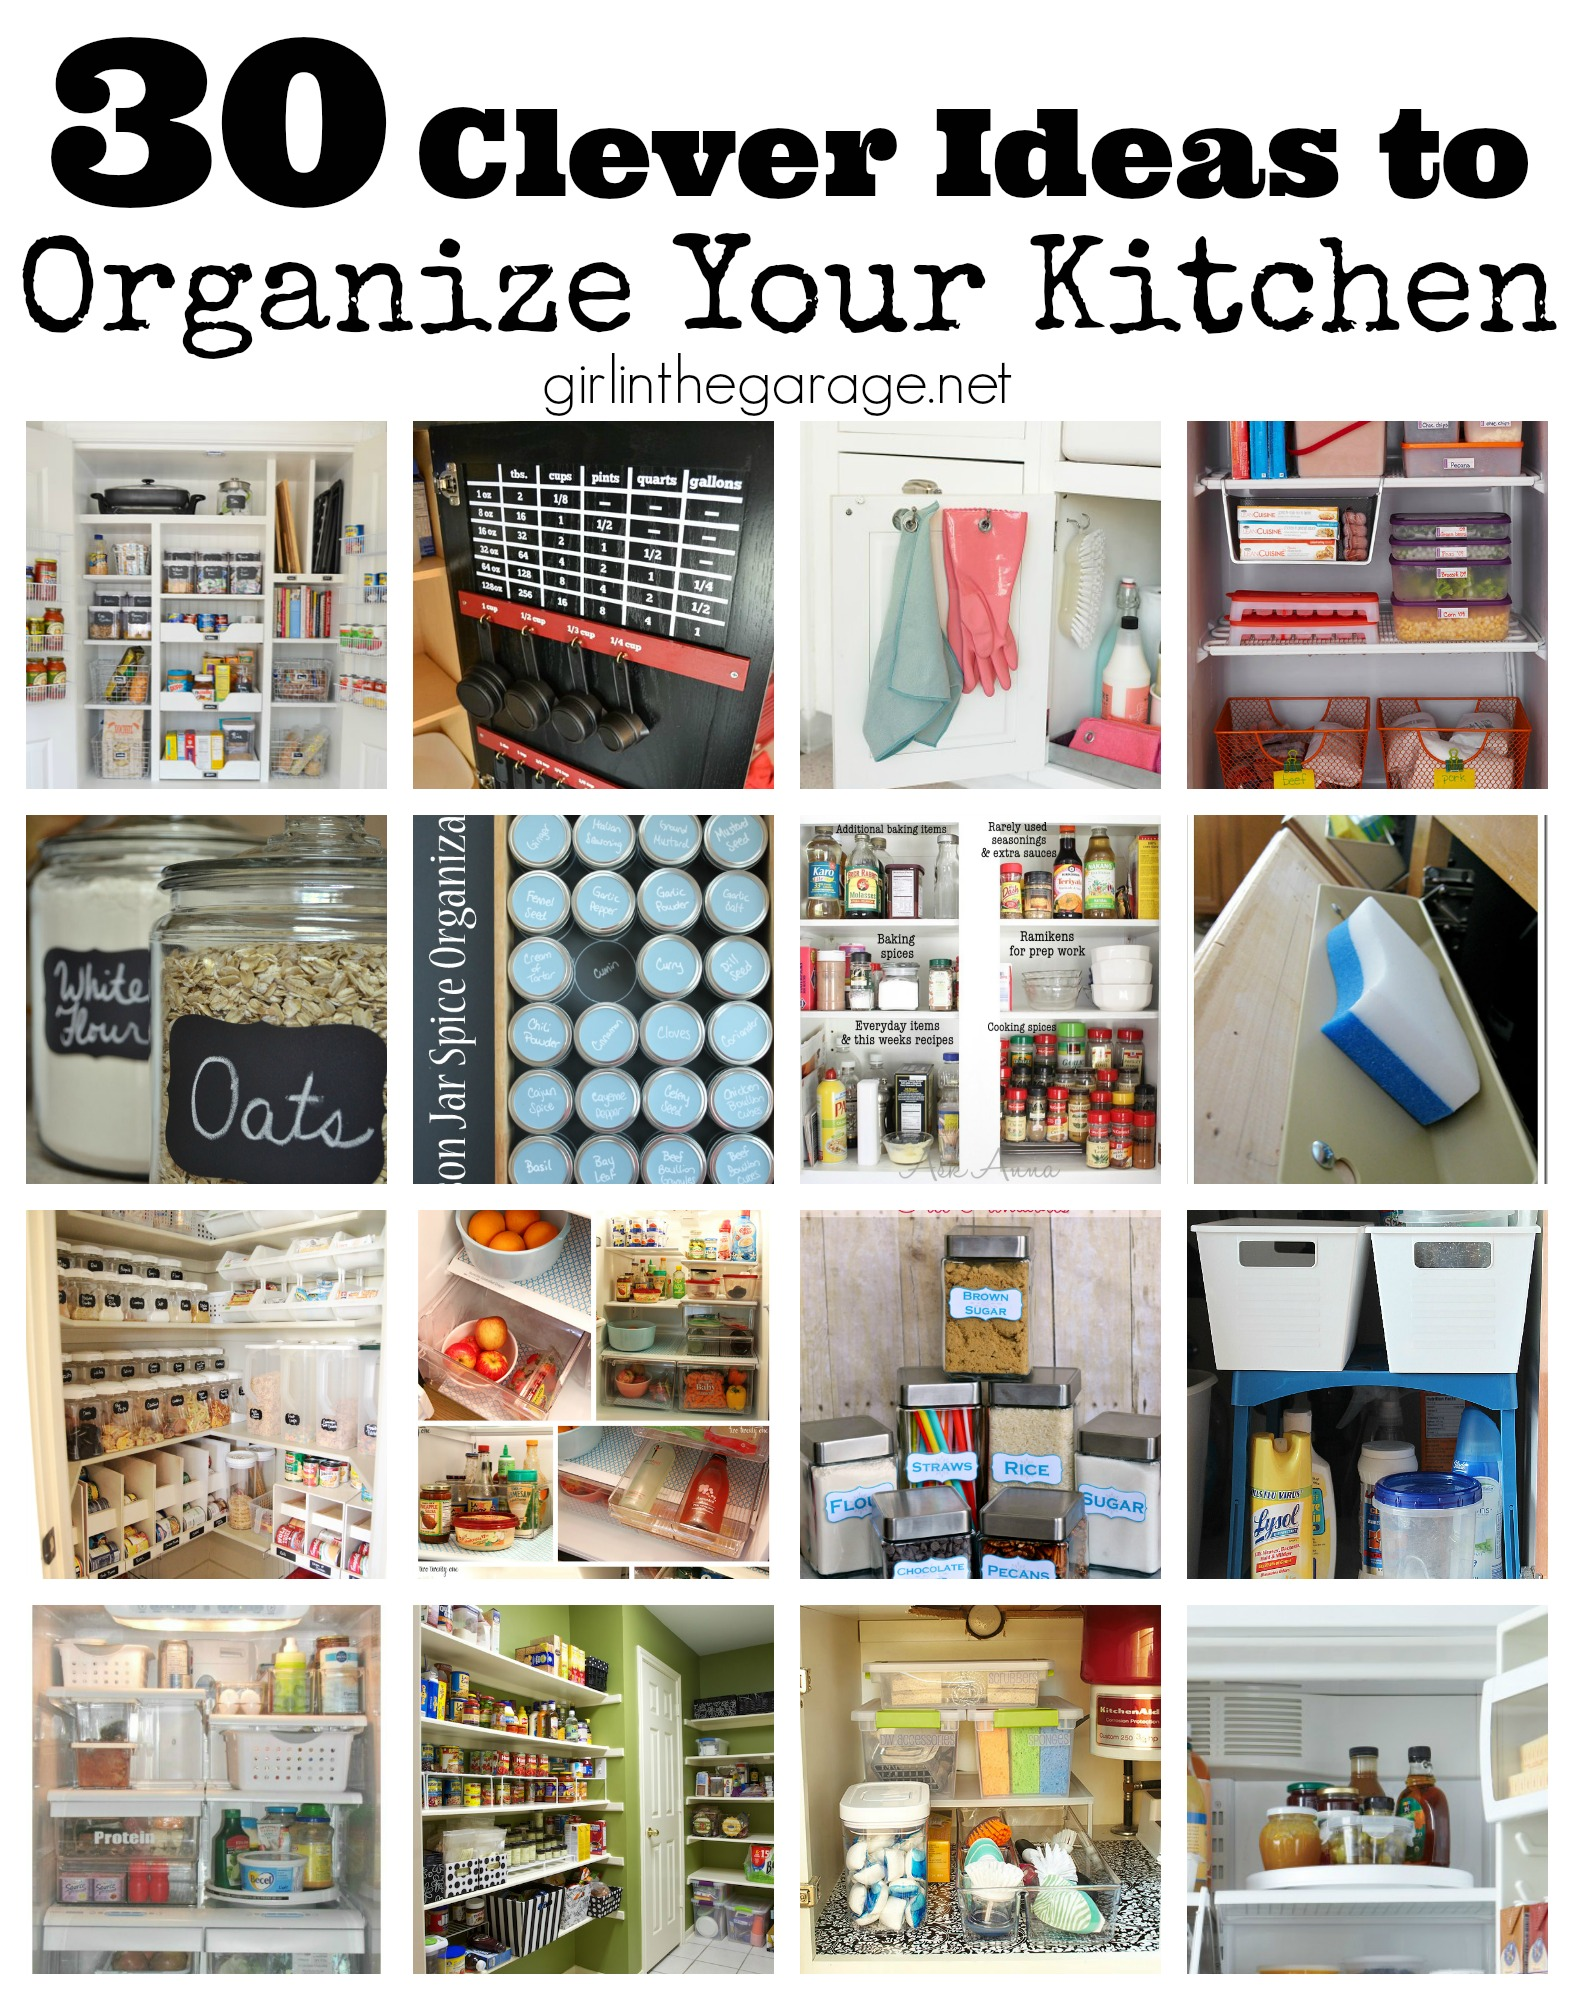 30 clever ideas to organize your kitchen girl in the garage 174